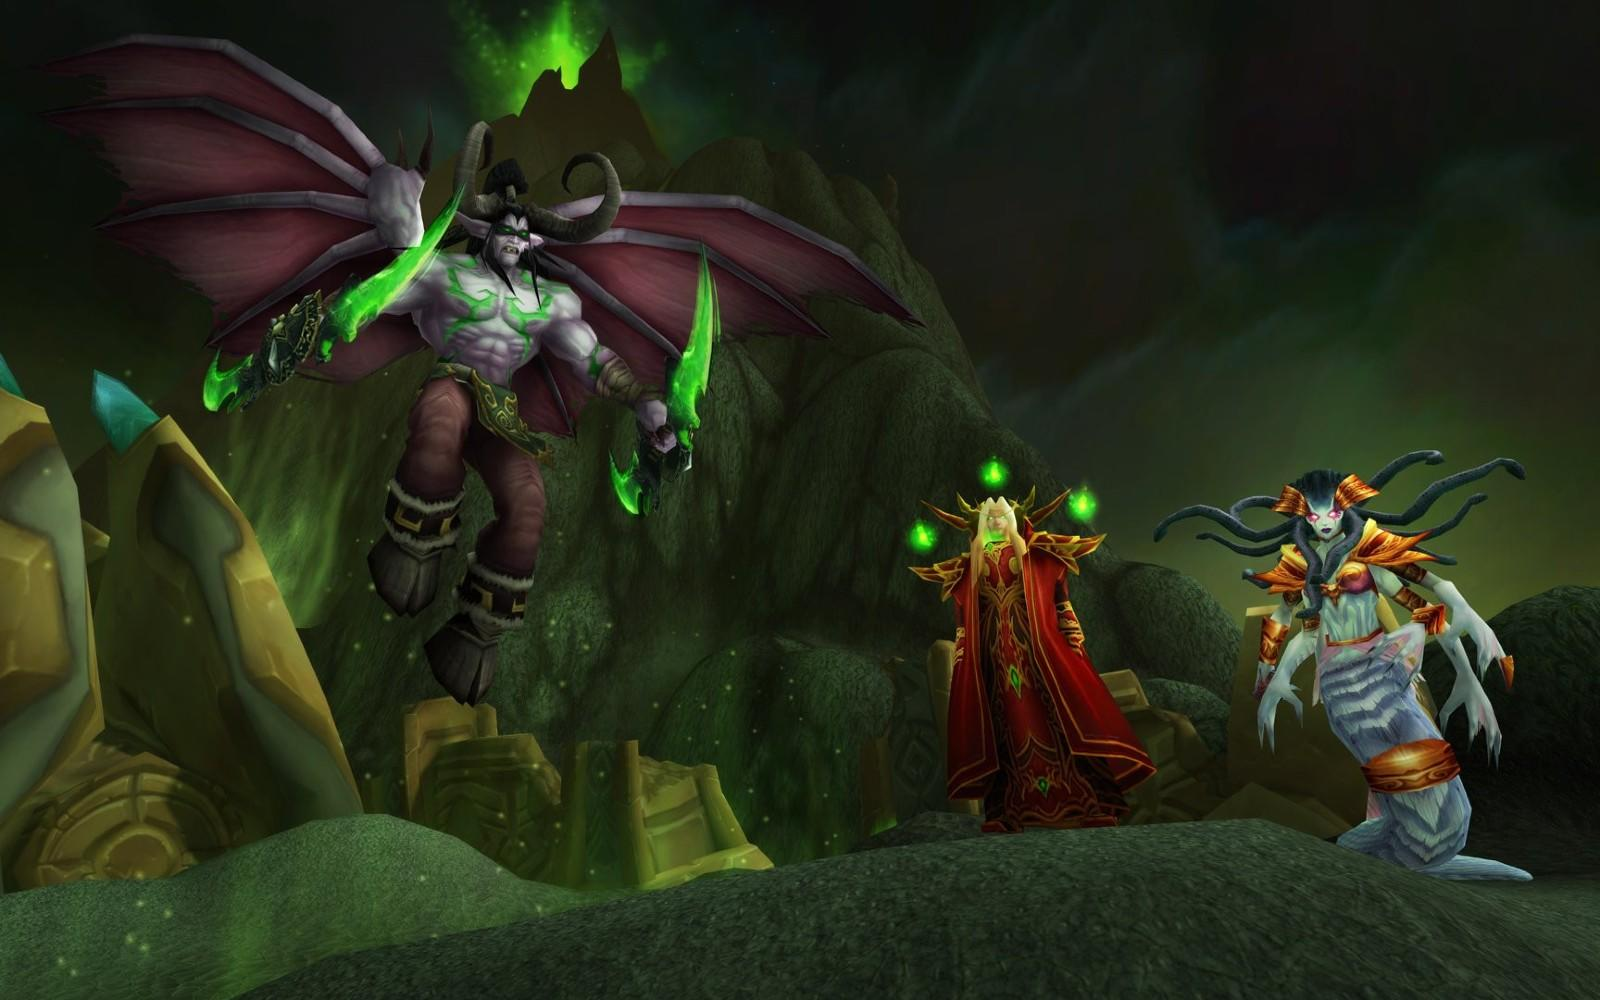 'World of Warcraft: Burning Crusade Classic' comes out later this year